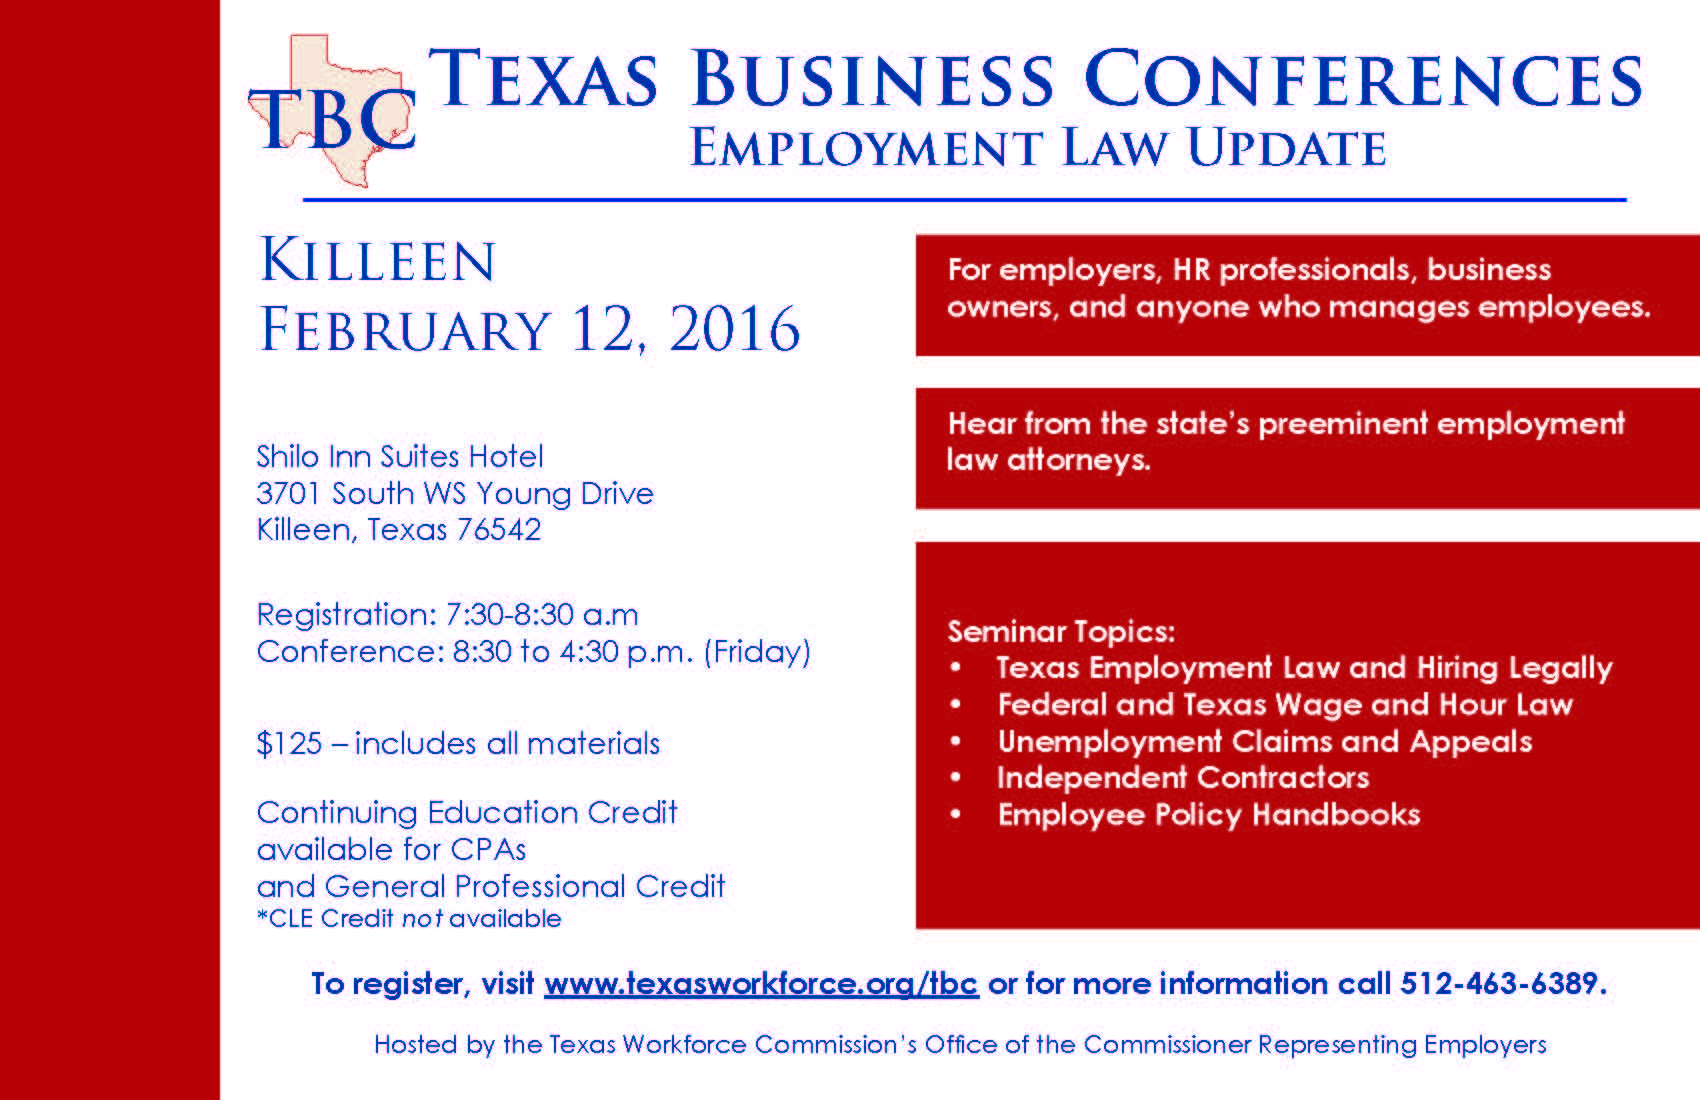 employment law seminar This seminar is approved defense and labor & employment practice areas during law employers in all aspects of labor and employment law.